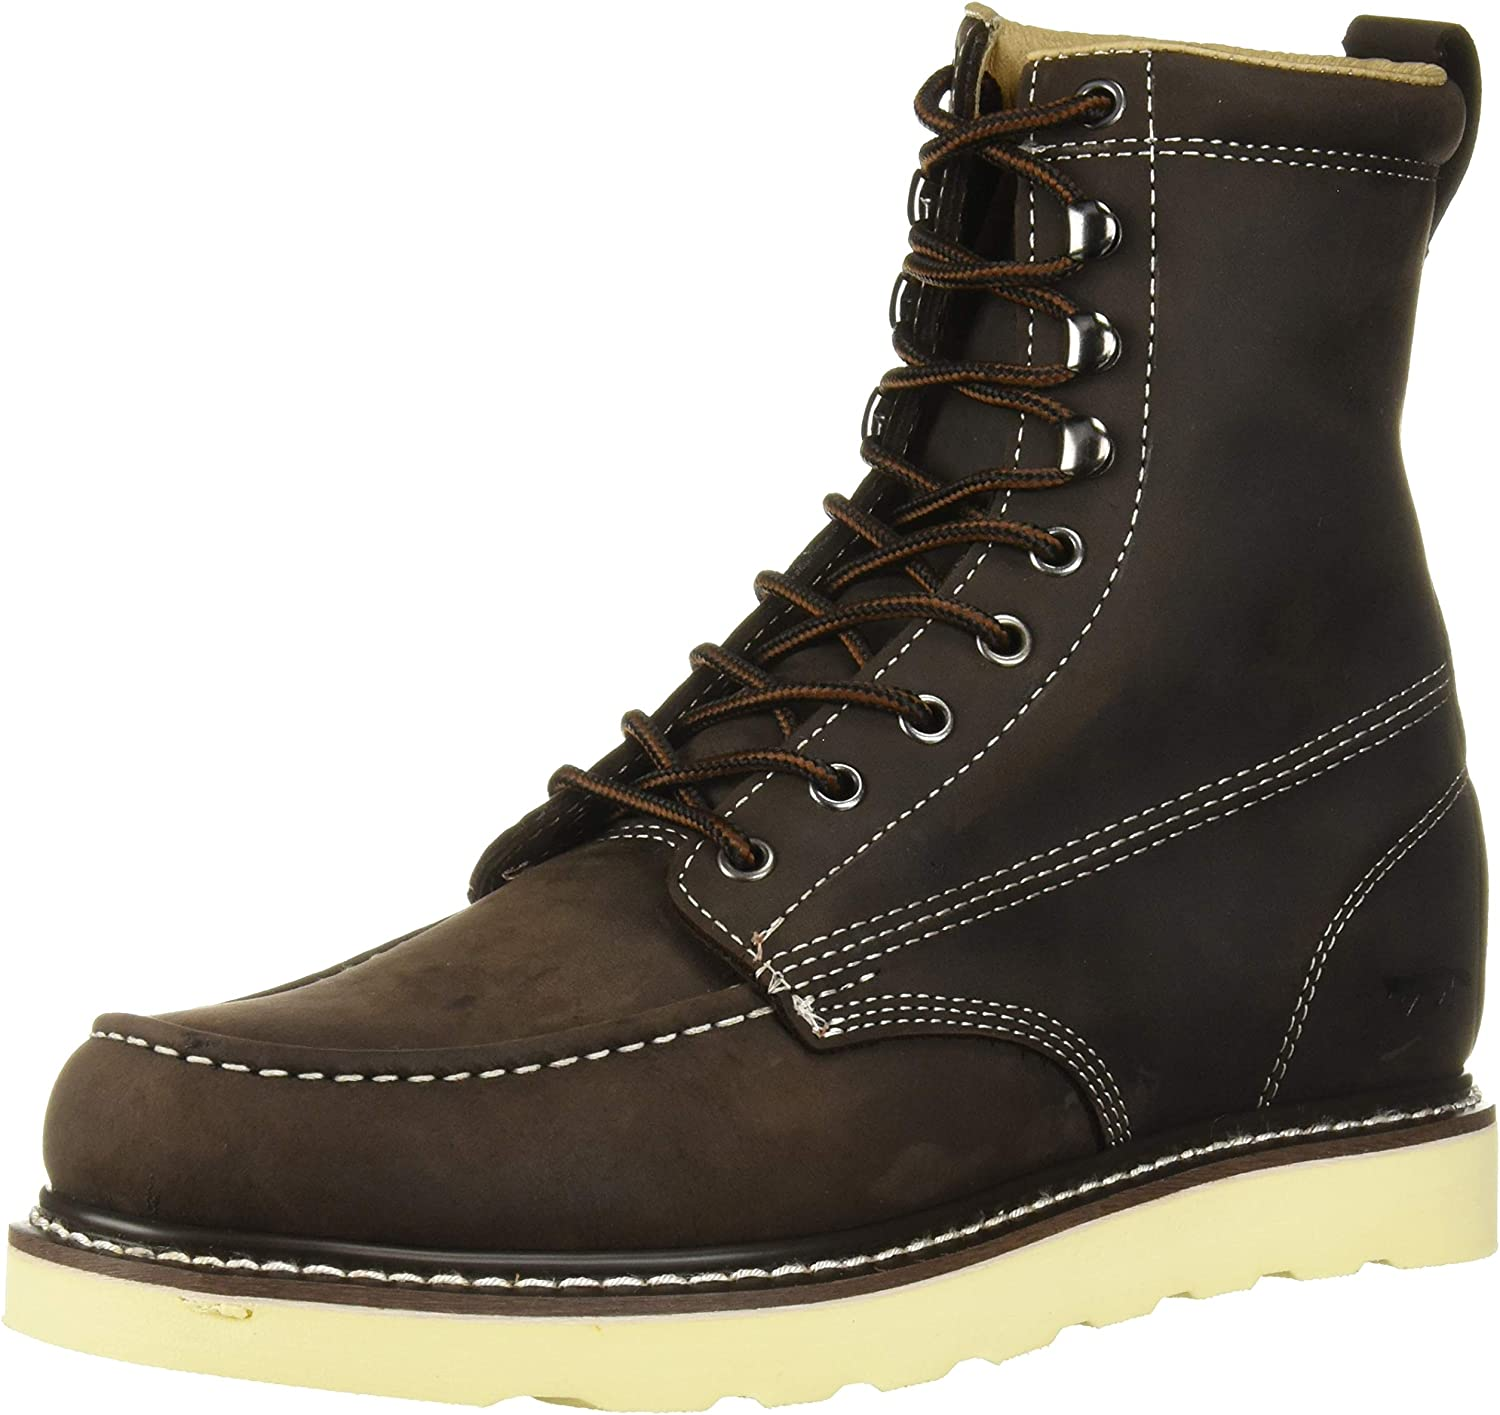 King Rocks Work Boots 8 Mens Moc Toe Wedge Comfortable Leather Boot for Work and Construction